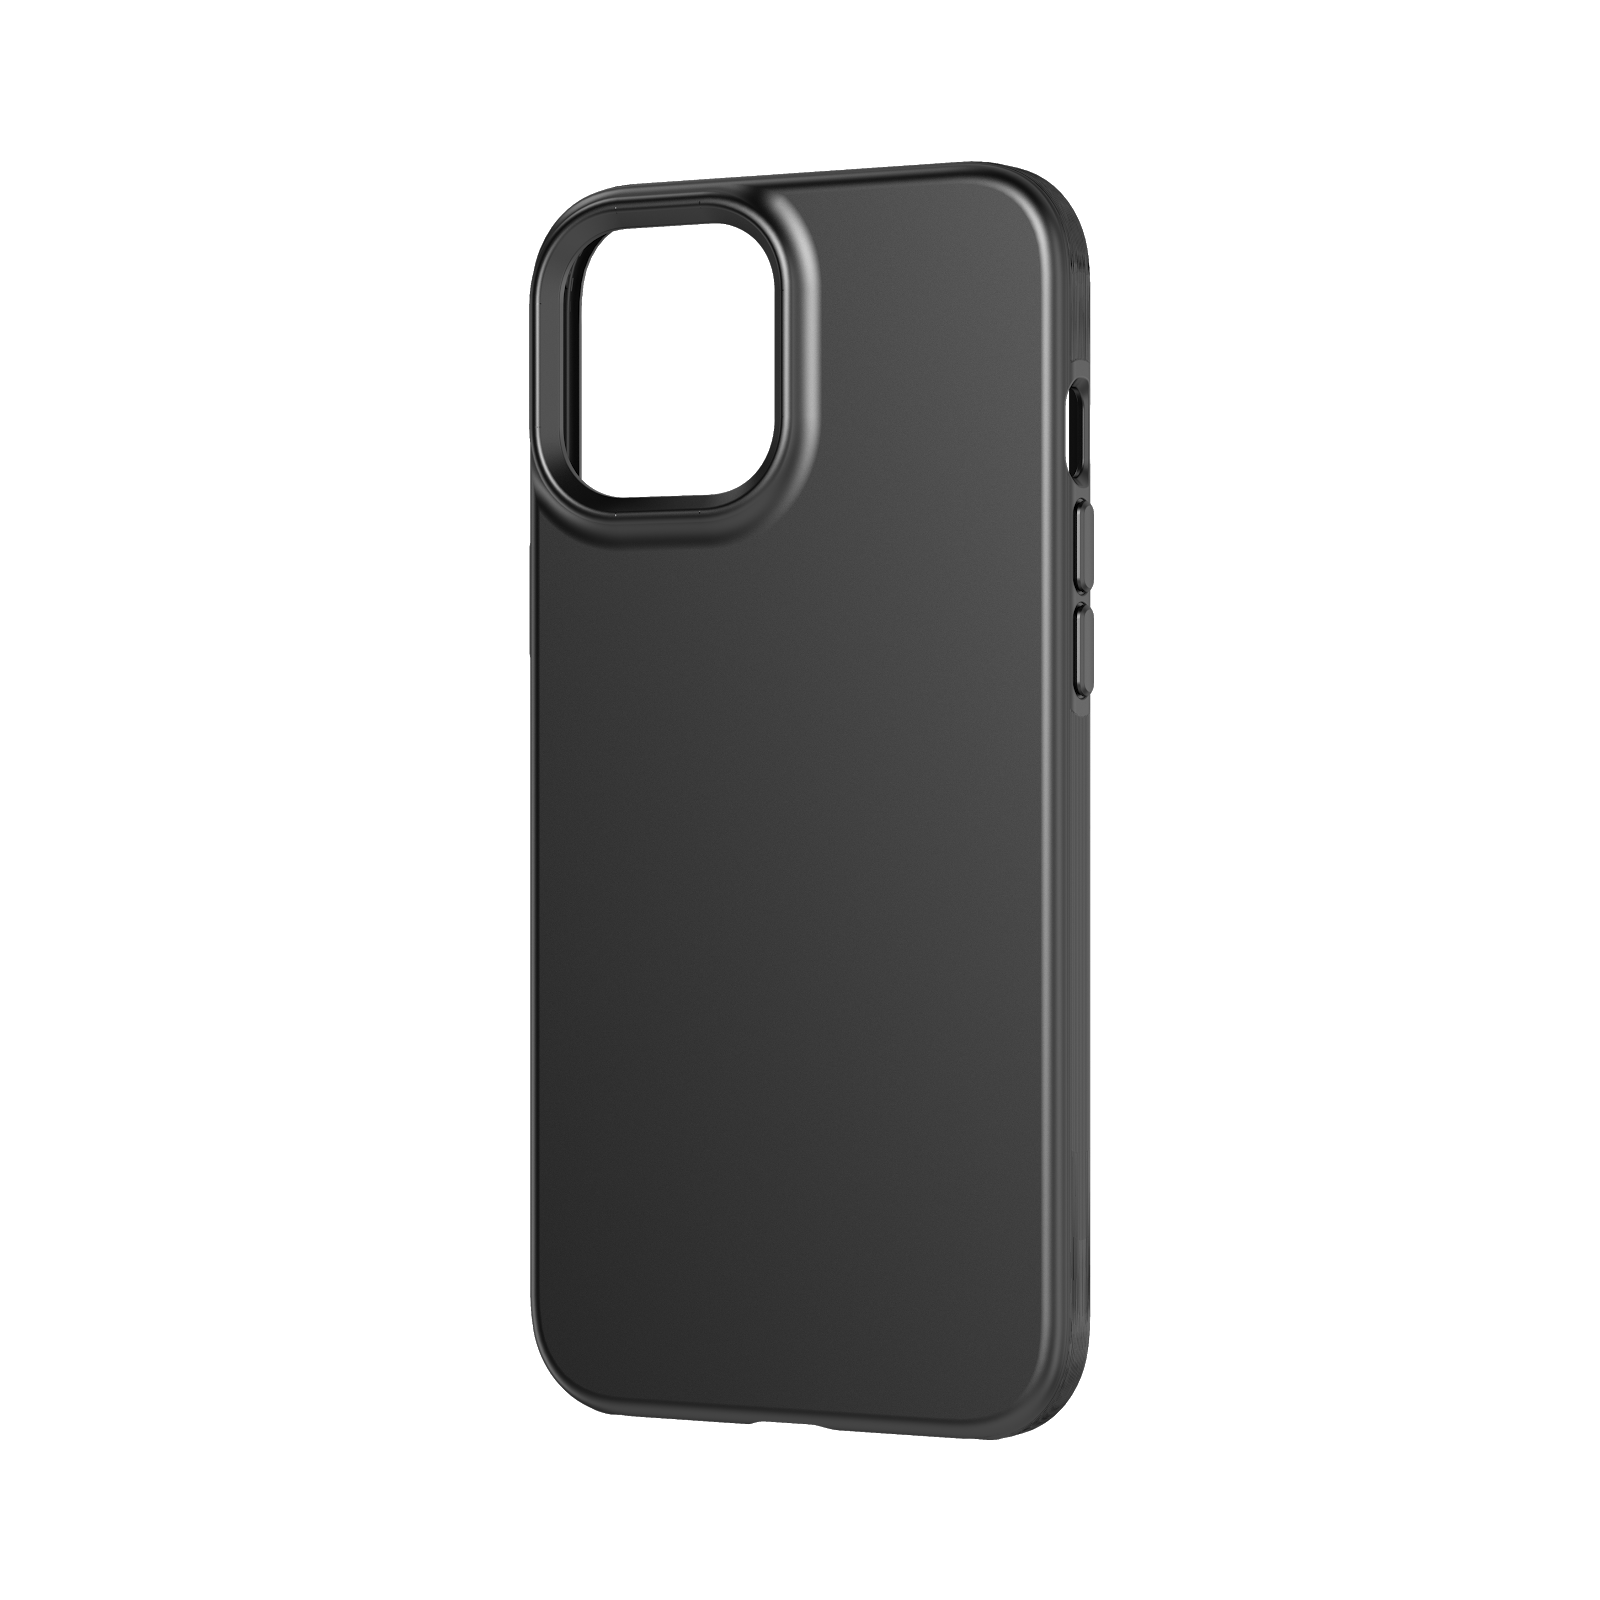 Tech21 Evo Slim For iPhone (2020) - Charcoal Black